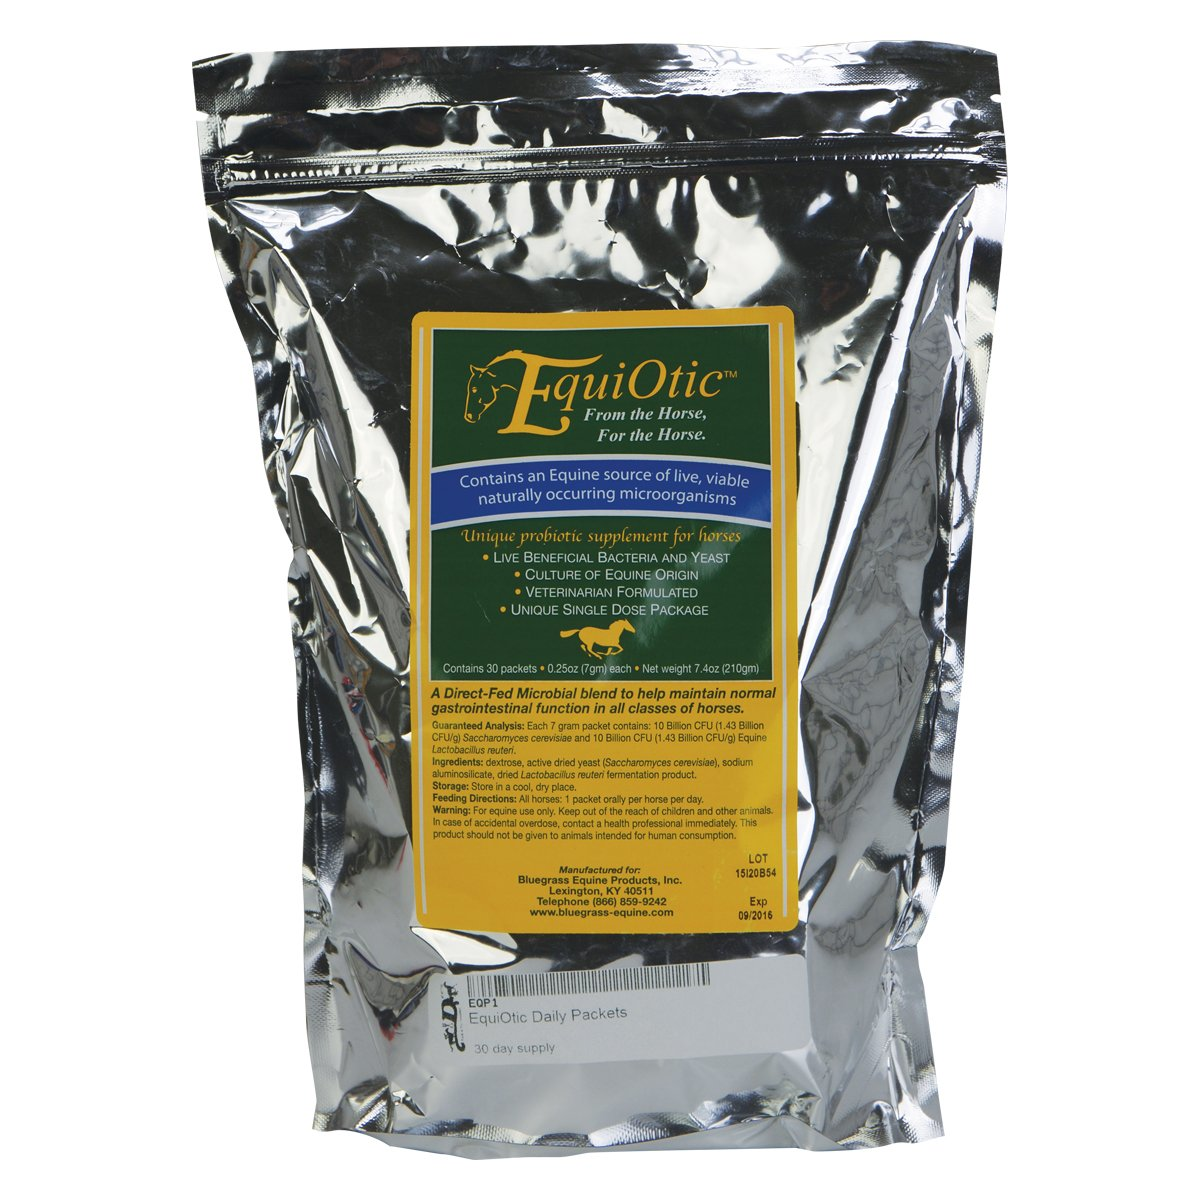 Equiotic Probiotic Supplement Daily Packets